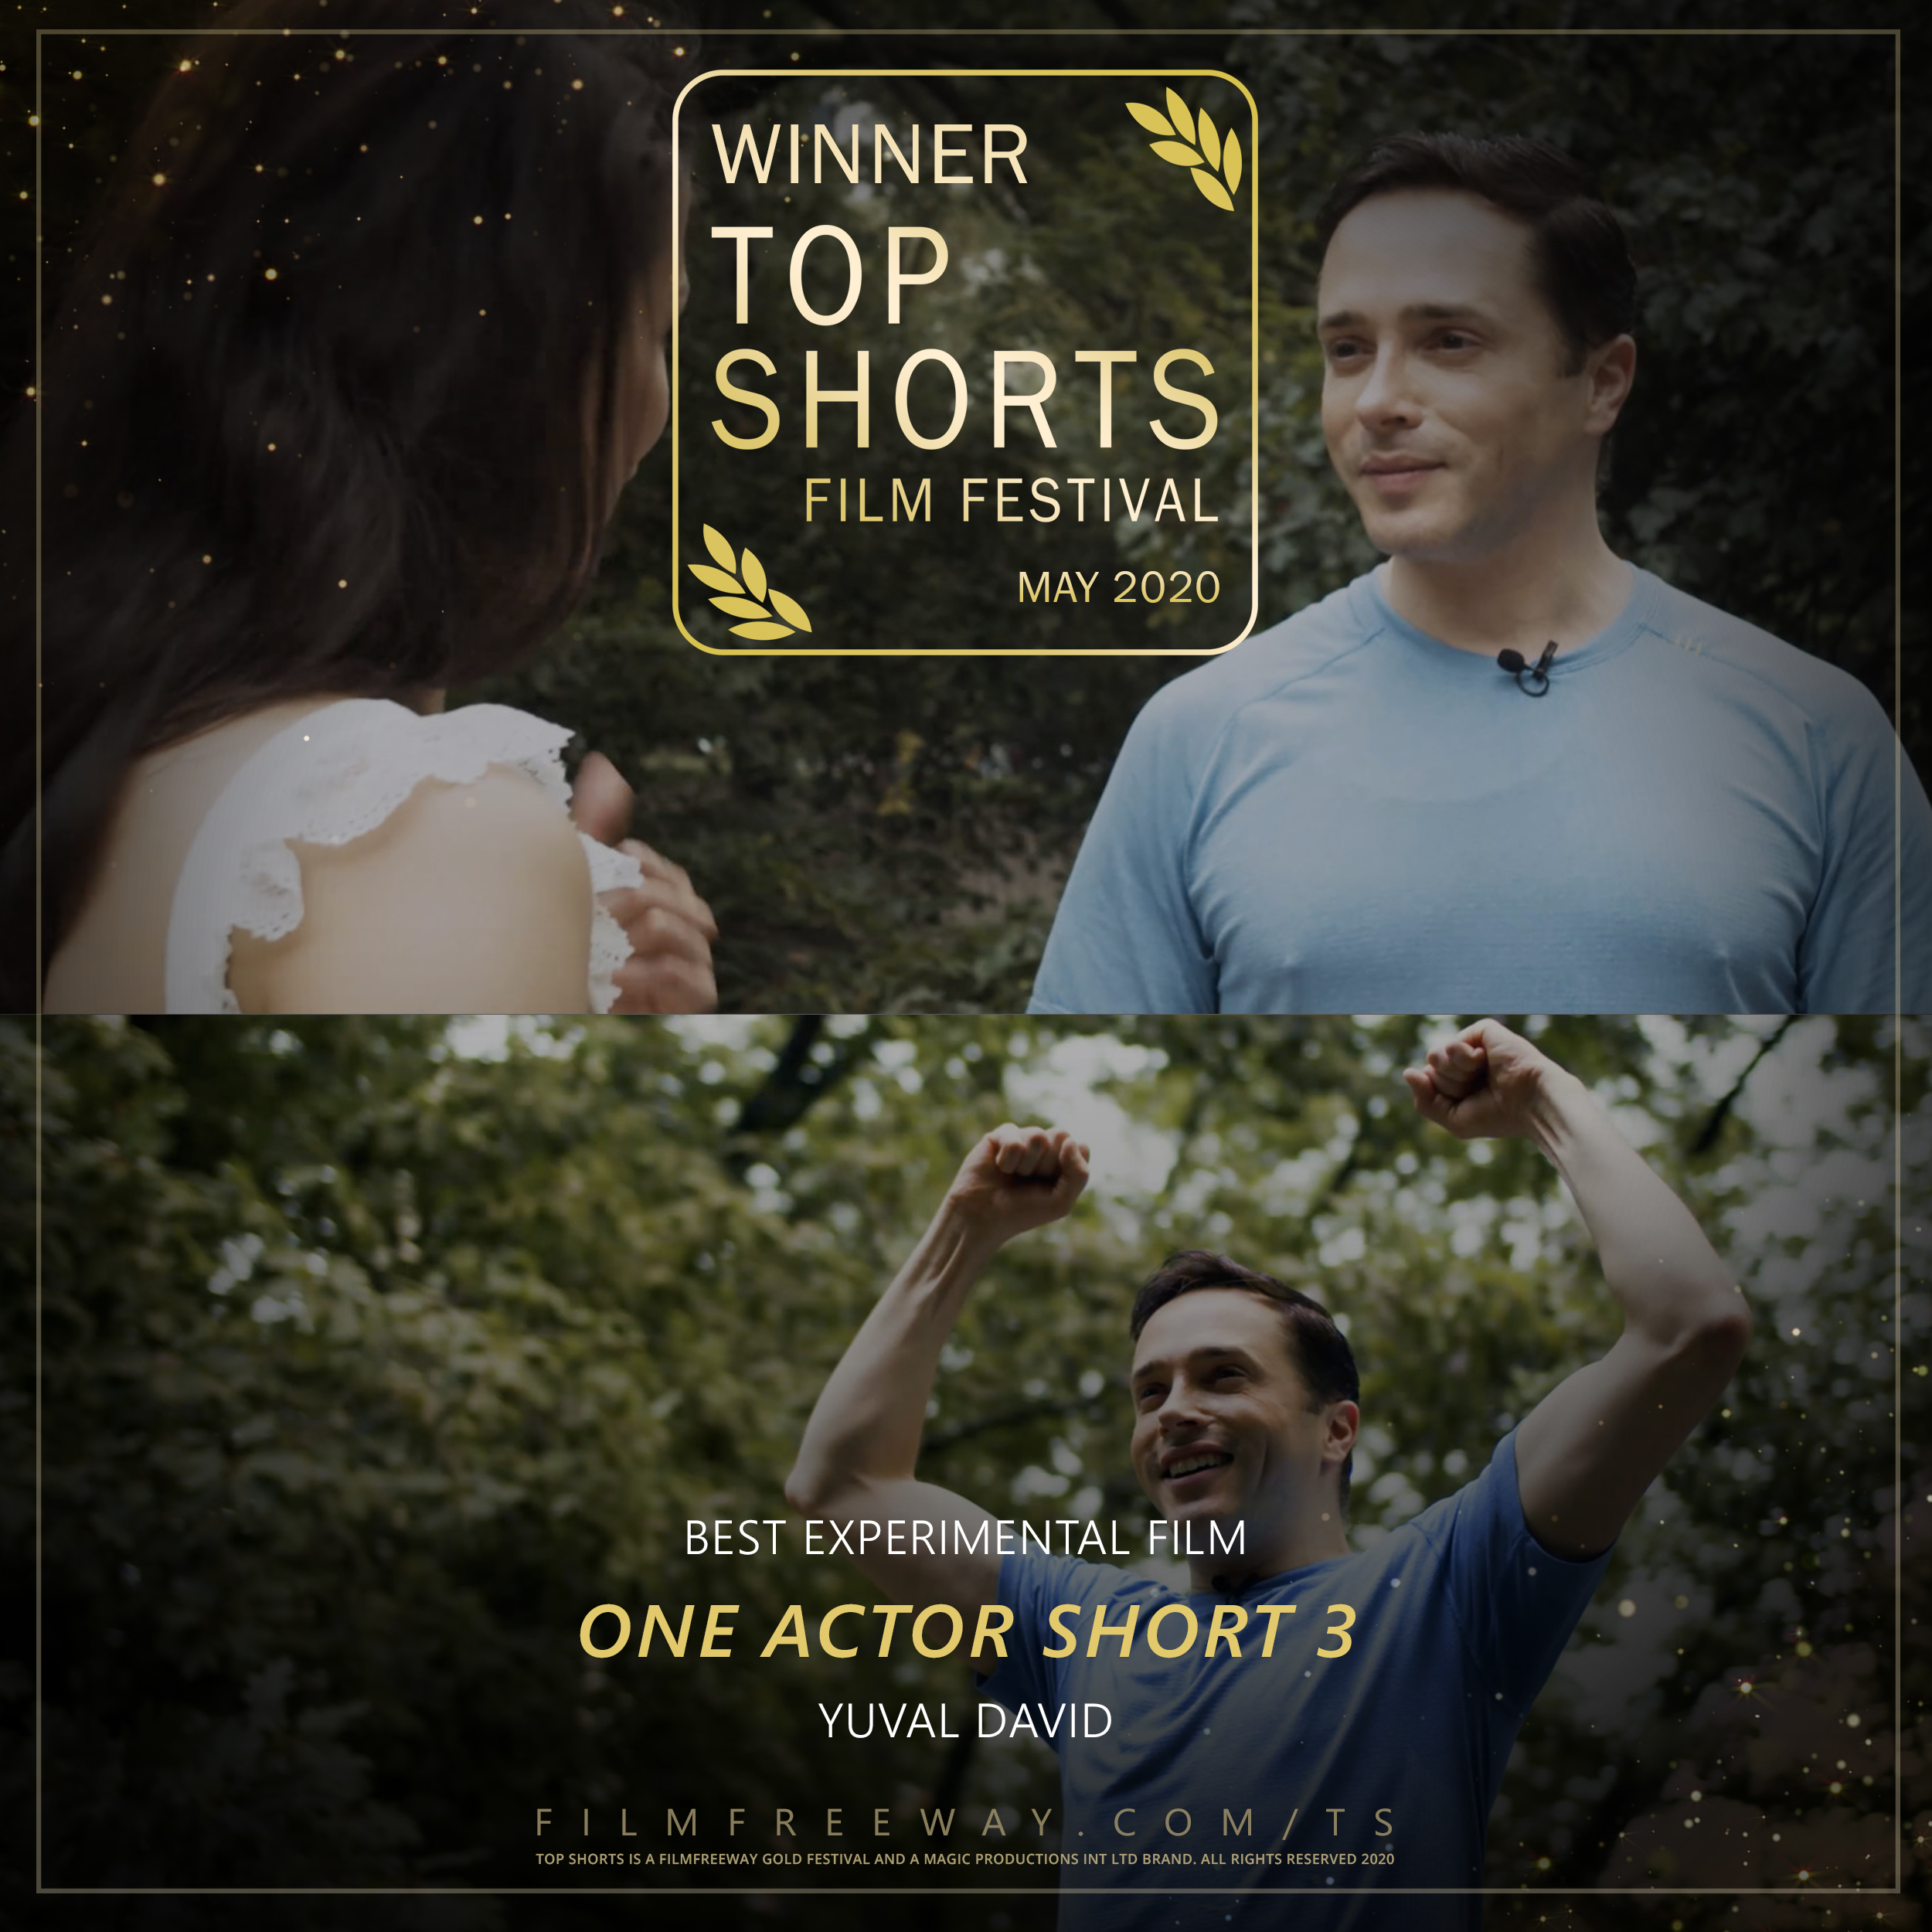 One Actor Short 3 design